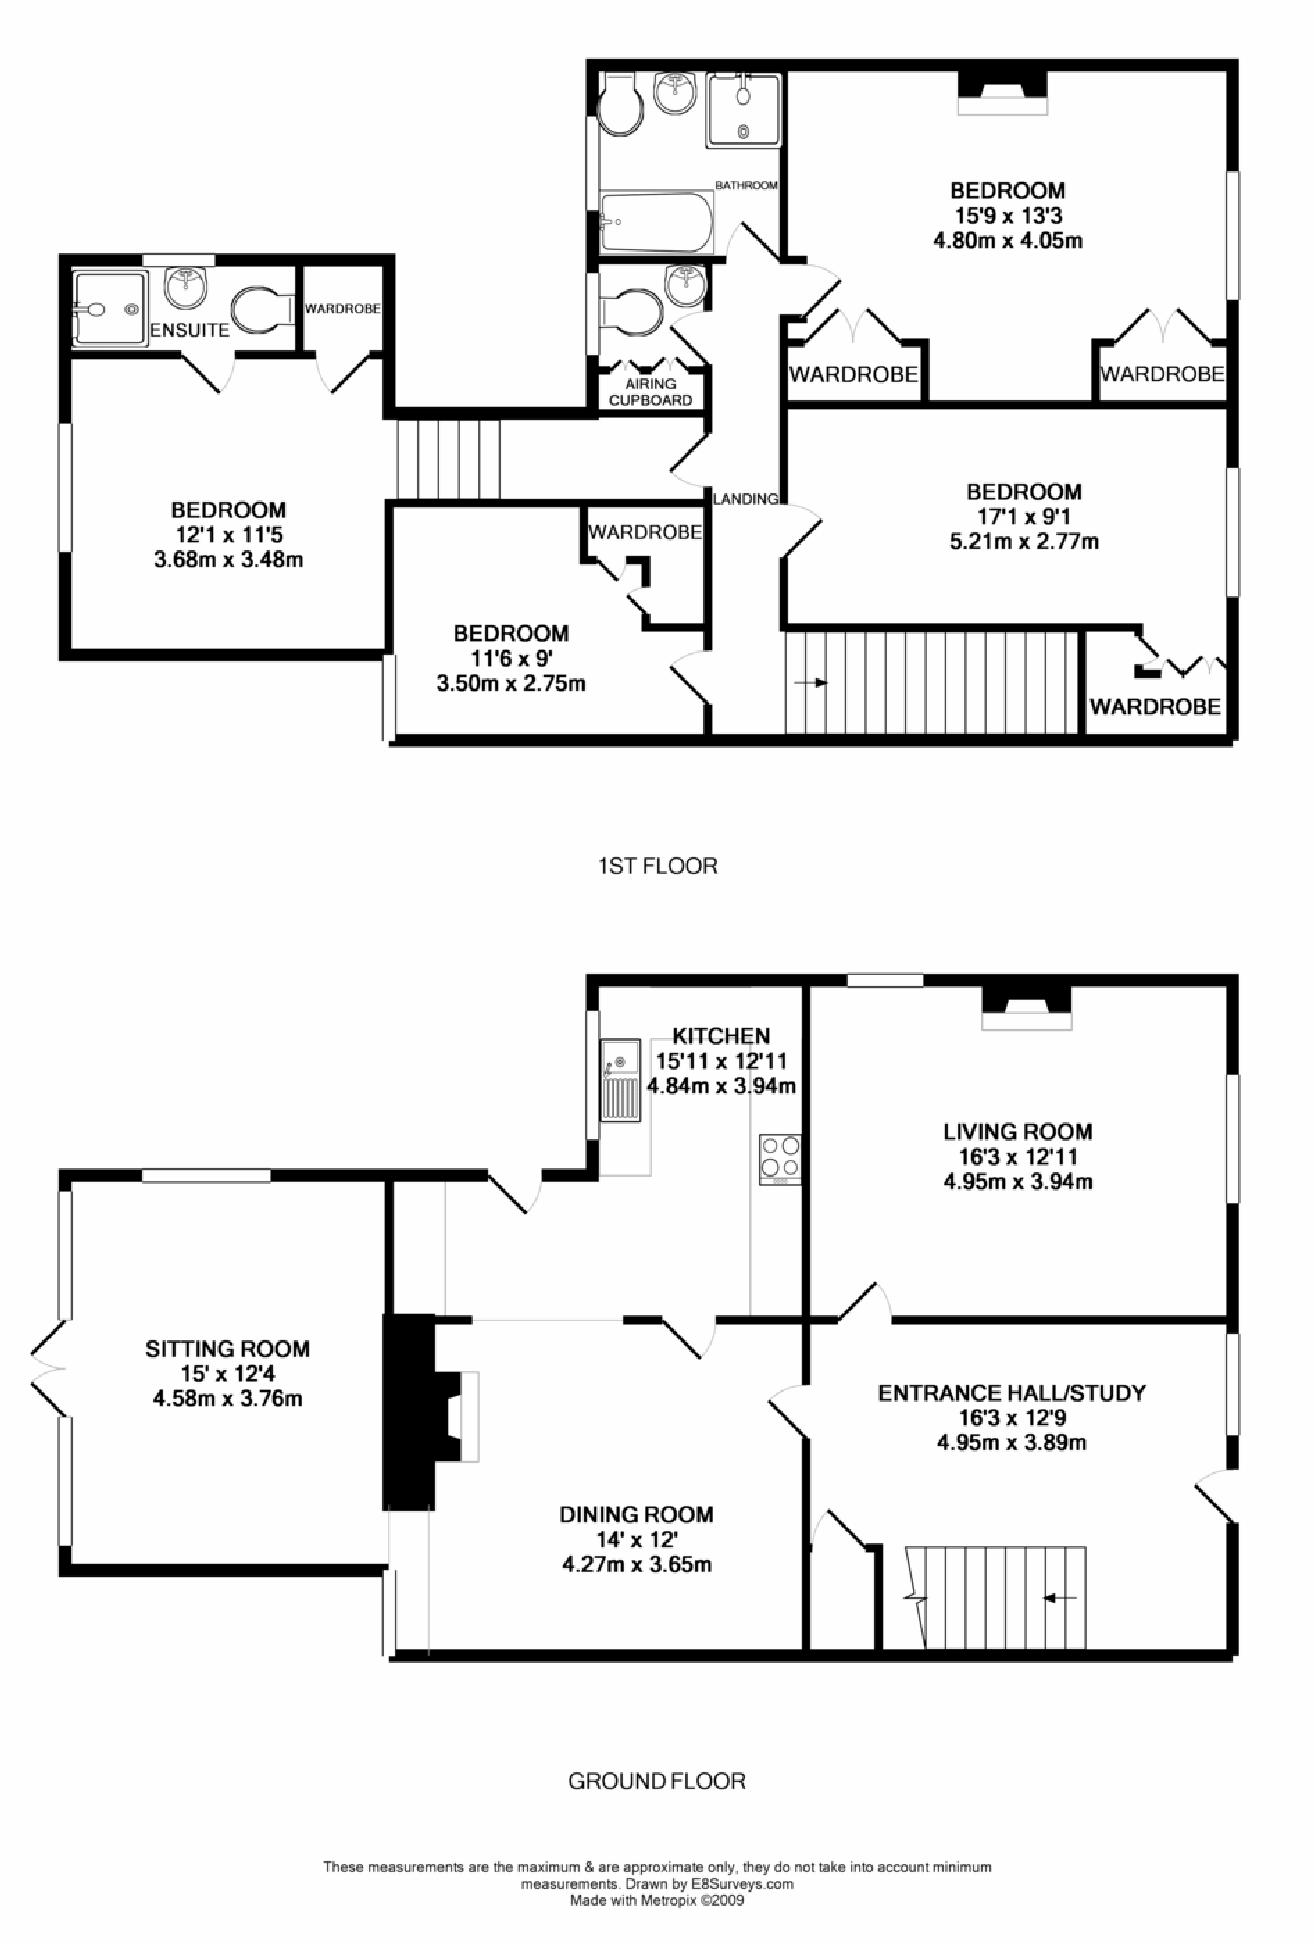 4 bedroom barndominium plans joy studio design gallery for 2 story barndominium floor plans